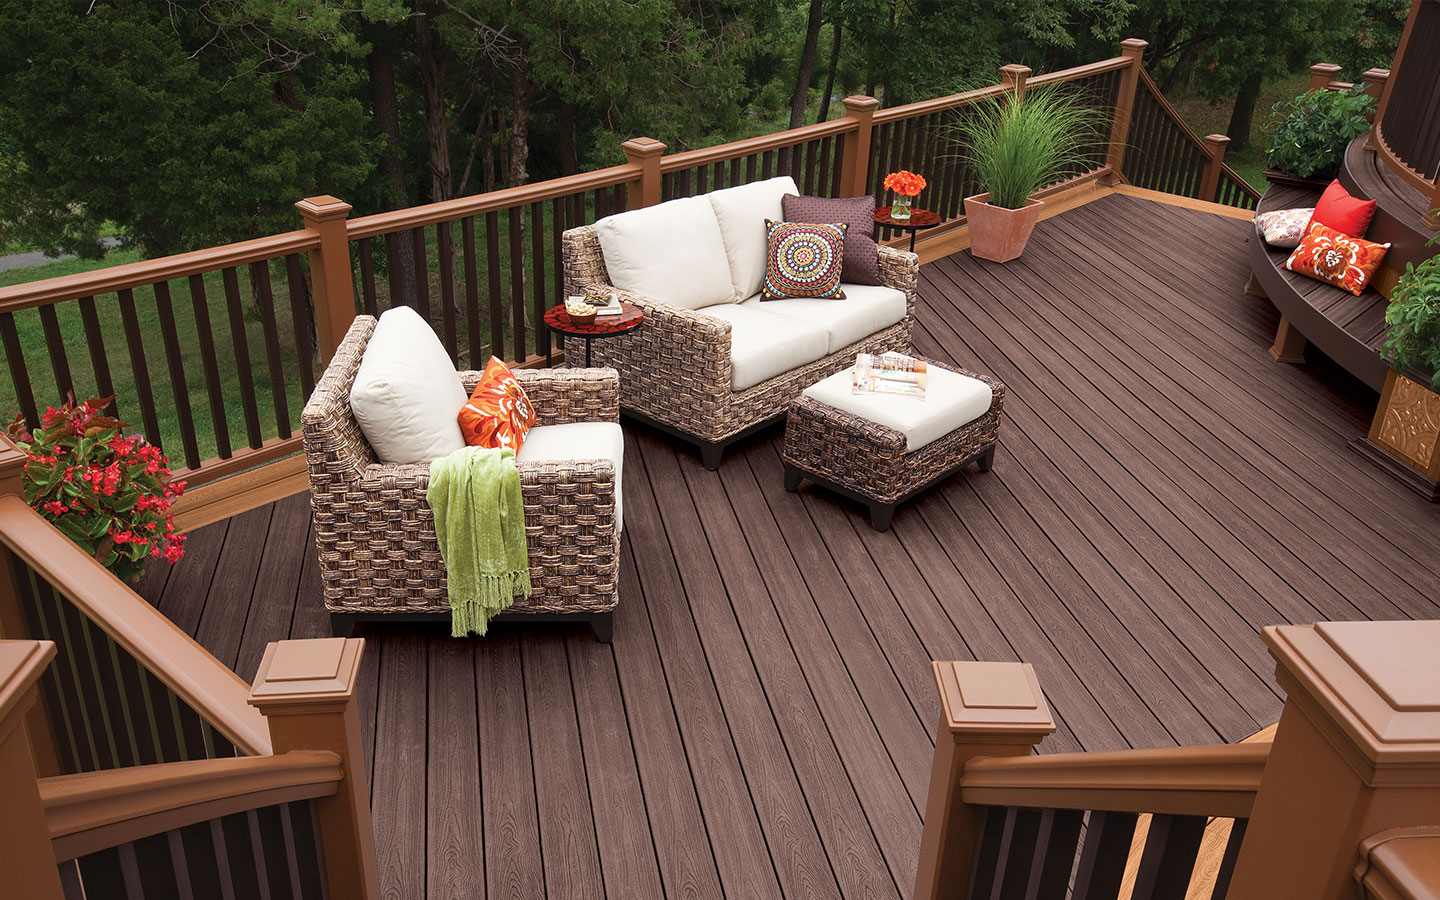 the standard rectangular deck design allows for maximum use of space and versatility - Trex Deck Design Ideas